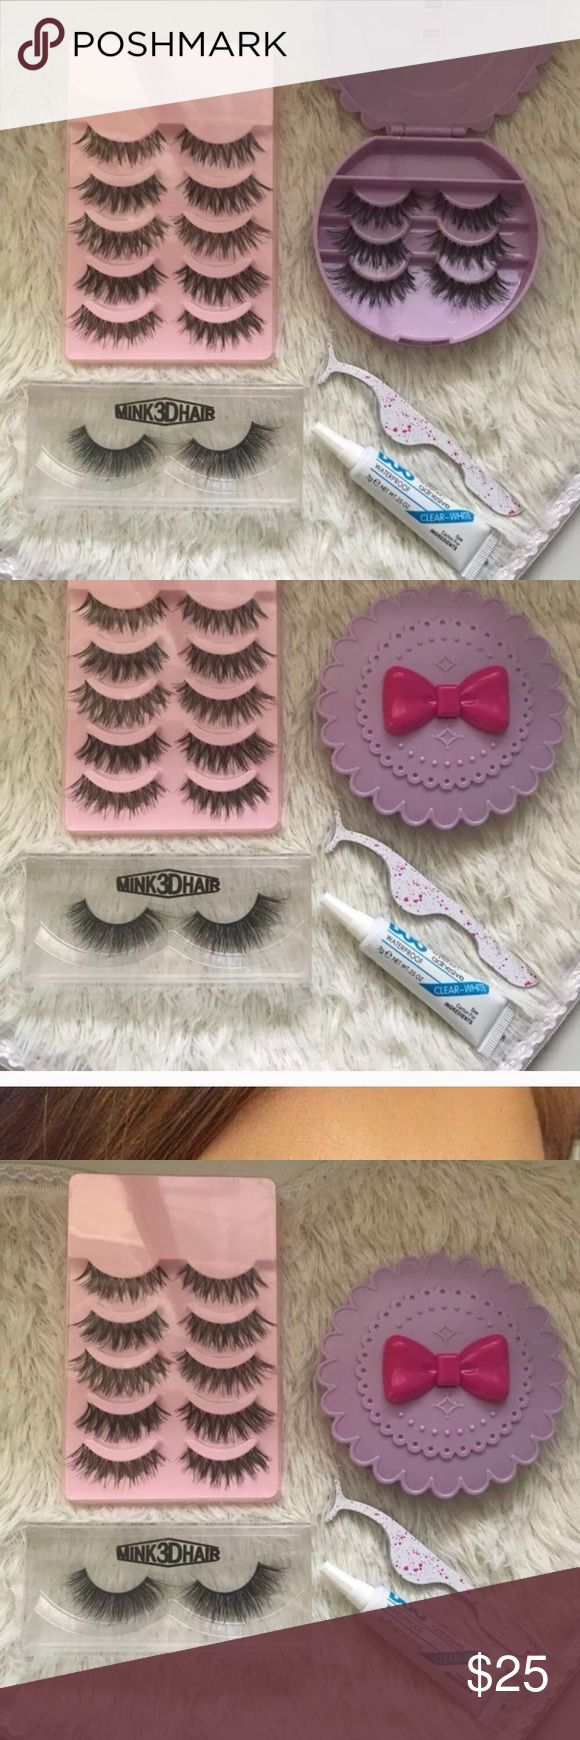 Eyelash set +$2 Add on eyelash Applicator  +$3 Add on eyelash glue Please message me if you want to add them.   ❌No Offers ✅ Bundle &  Save  # tags Iconic, mink, red cherry eyelashes, house of lashes, doll, kawaii, case, full, natural,  Koko, Ardell, wispies, Demi , makeup, Iconic, mink, red cherry eyelashes, house of lashes, doll, kawaii, case, full, natural,  Koko, Ardell, wispies, Demi , makeup, mascara, eyelash applicator, Mykonos Mink , Lashes , wispy ,eyelash case, mink lashes  Ship